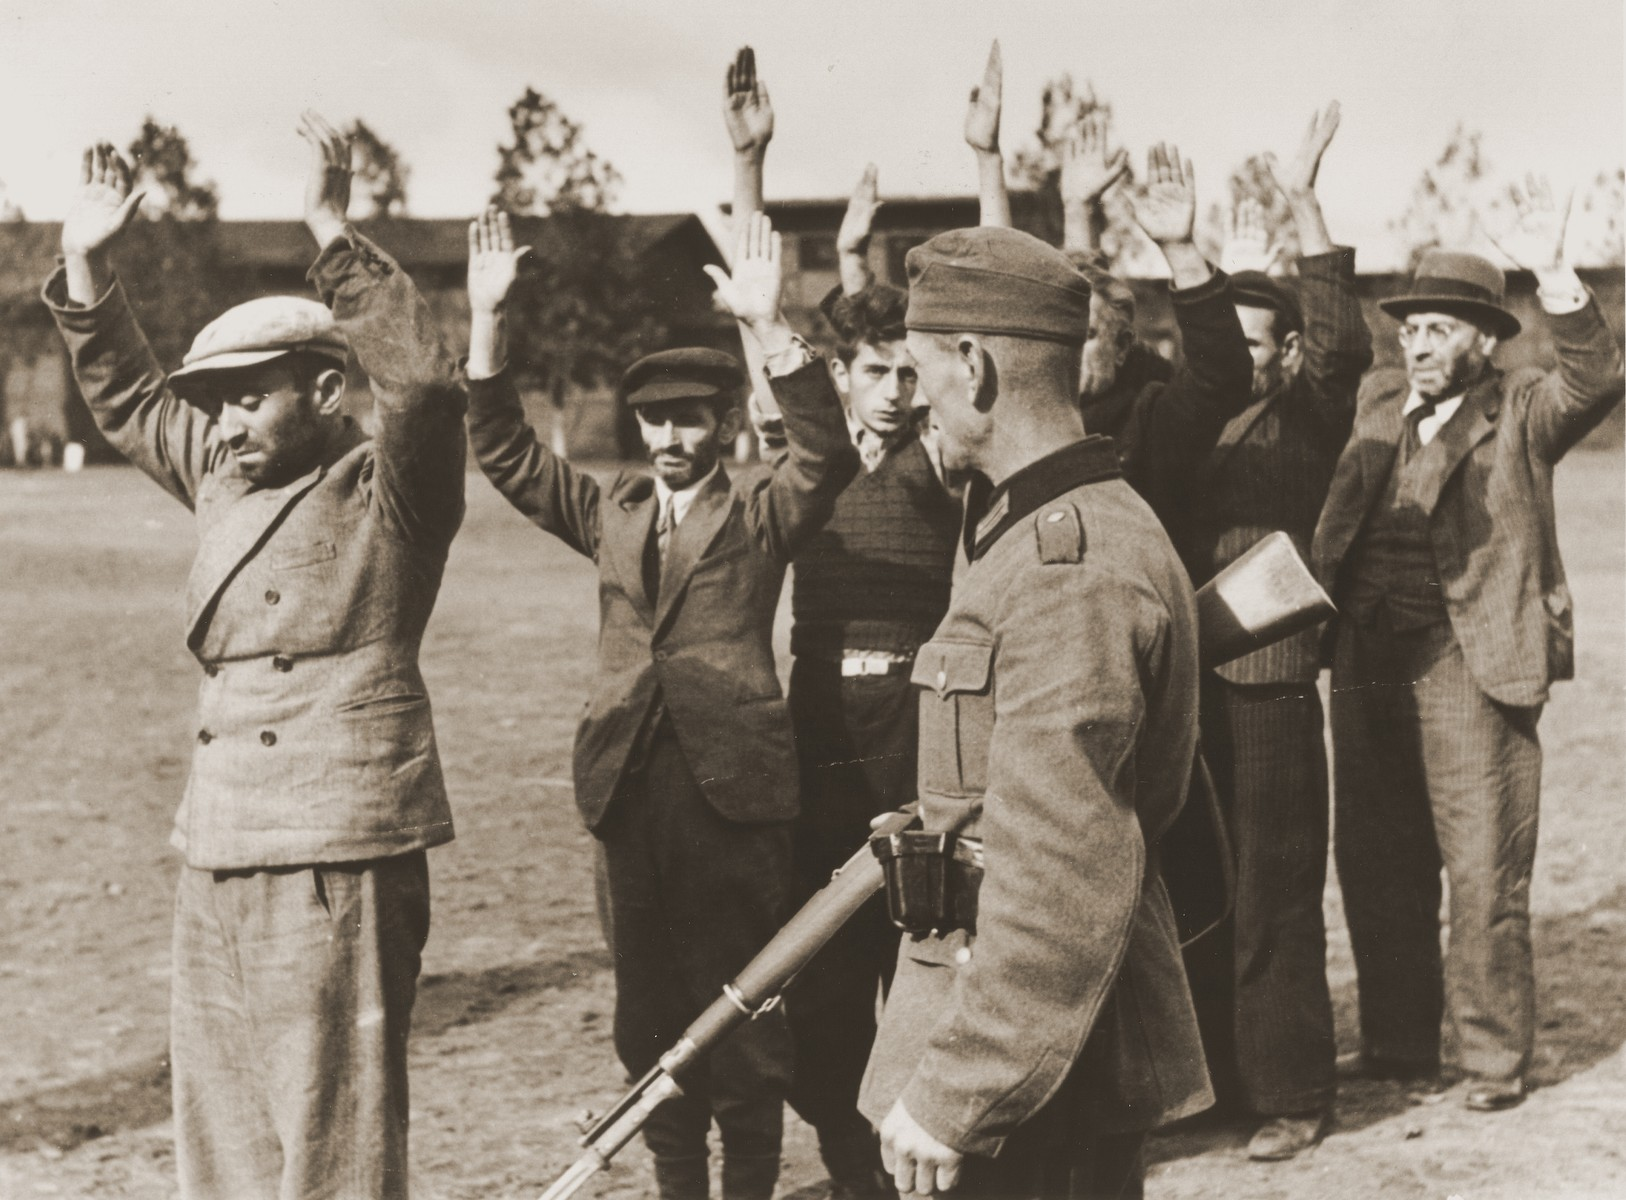 A German soldier guards a group of Poles and Jews who have been rounded-up and forced to stand in a line with their arms raised.